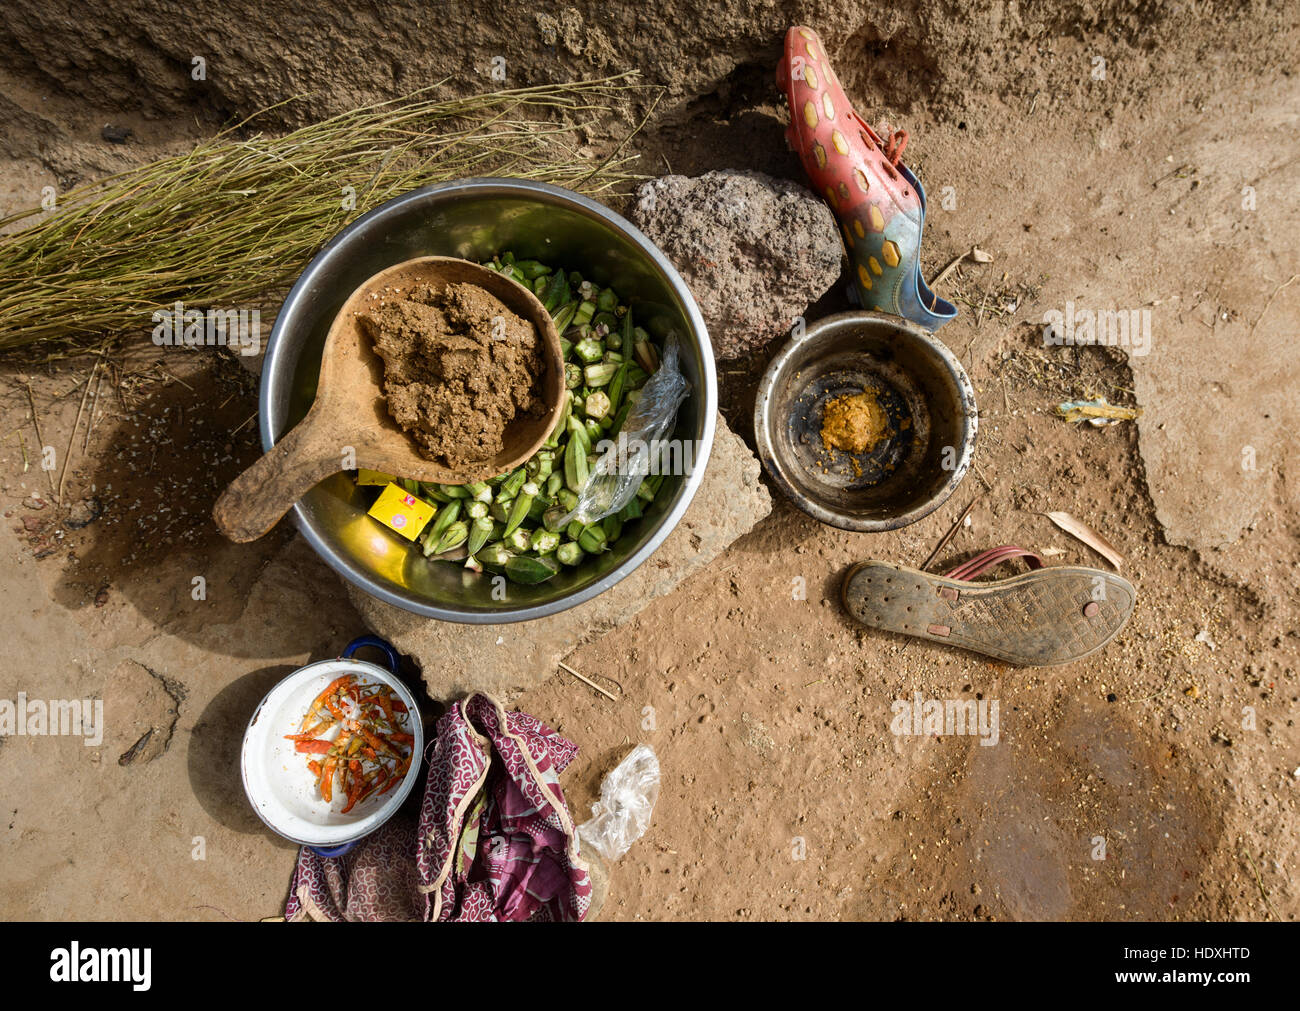 Village life of Northern Togo - Stock Image